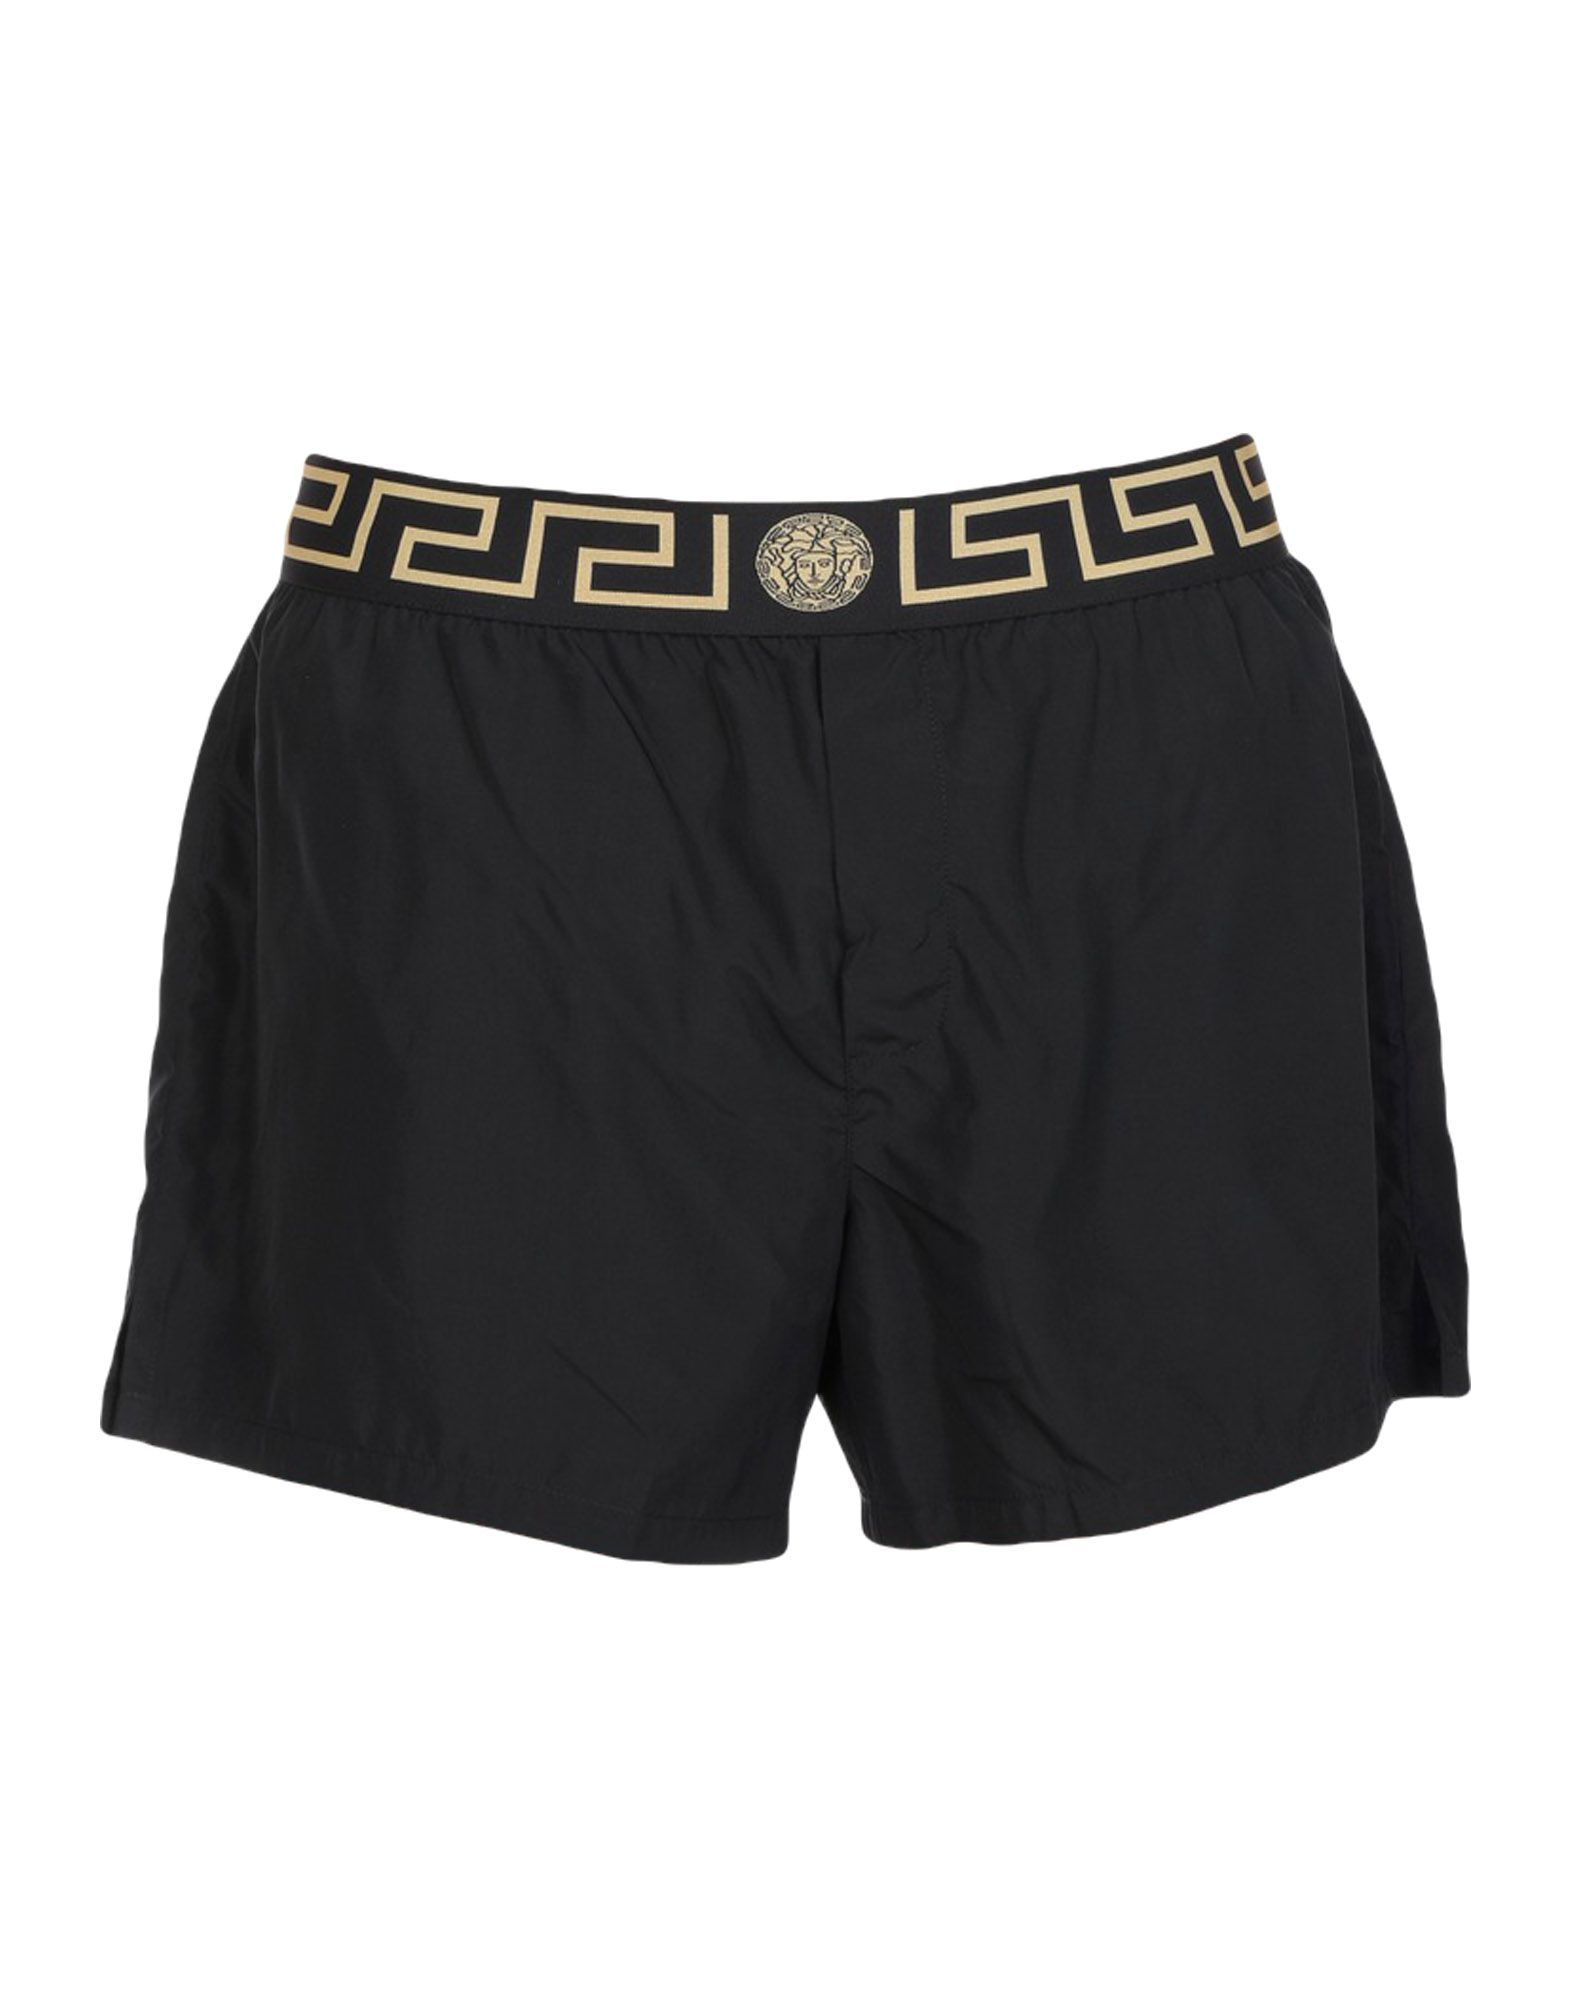 dba41643b7 VERSACE SWIM TRUNKS. #versace #cloth | Versace in 2019 | Versace ...